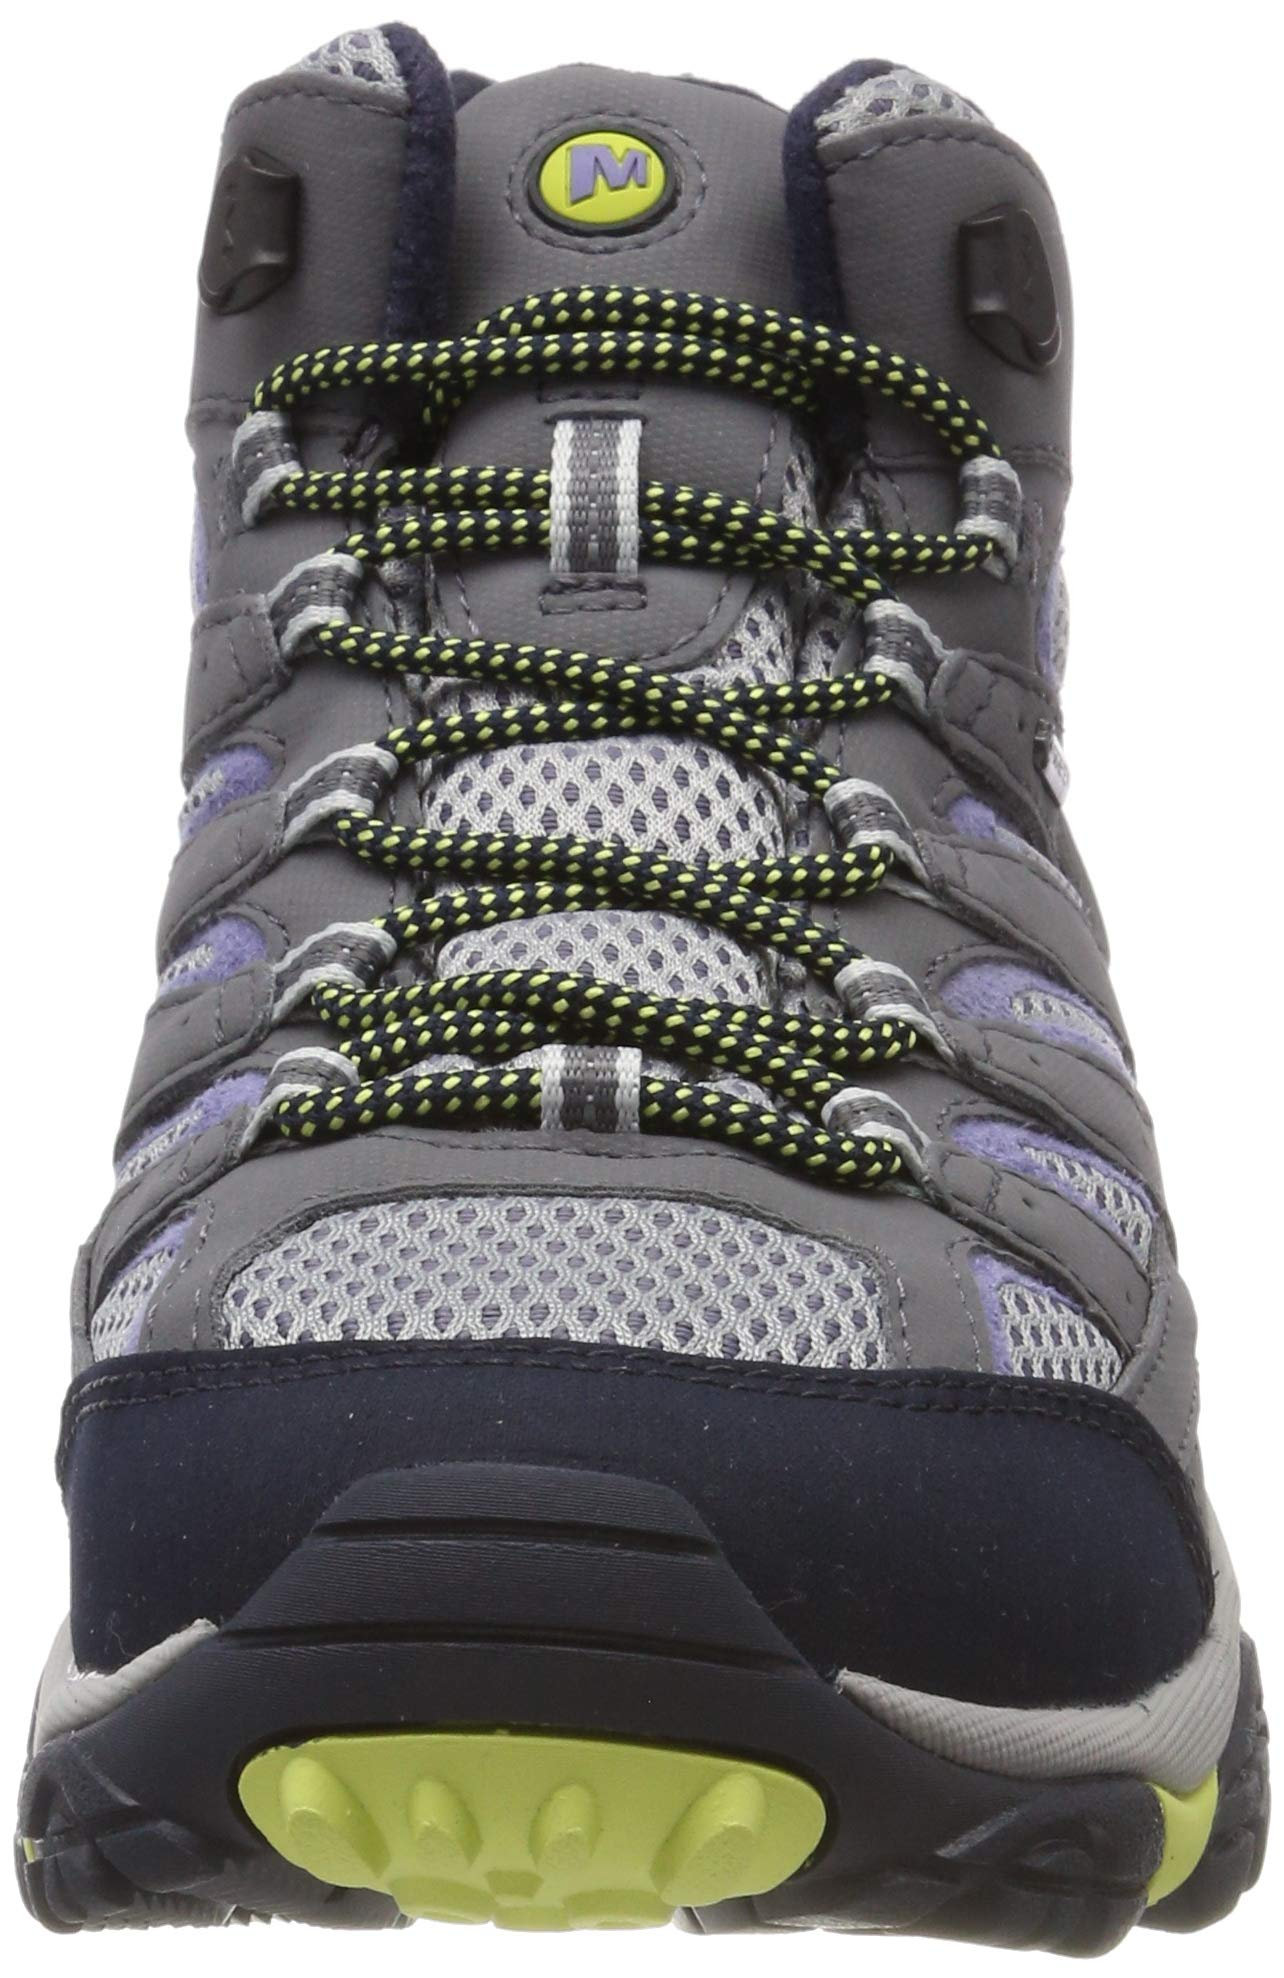 71Gf0FoFD1L - Merrell Women's Moab 2 Mid Gtx High Rise Hiking Shoes